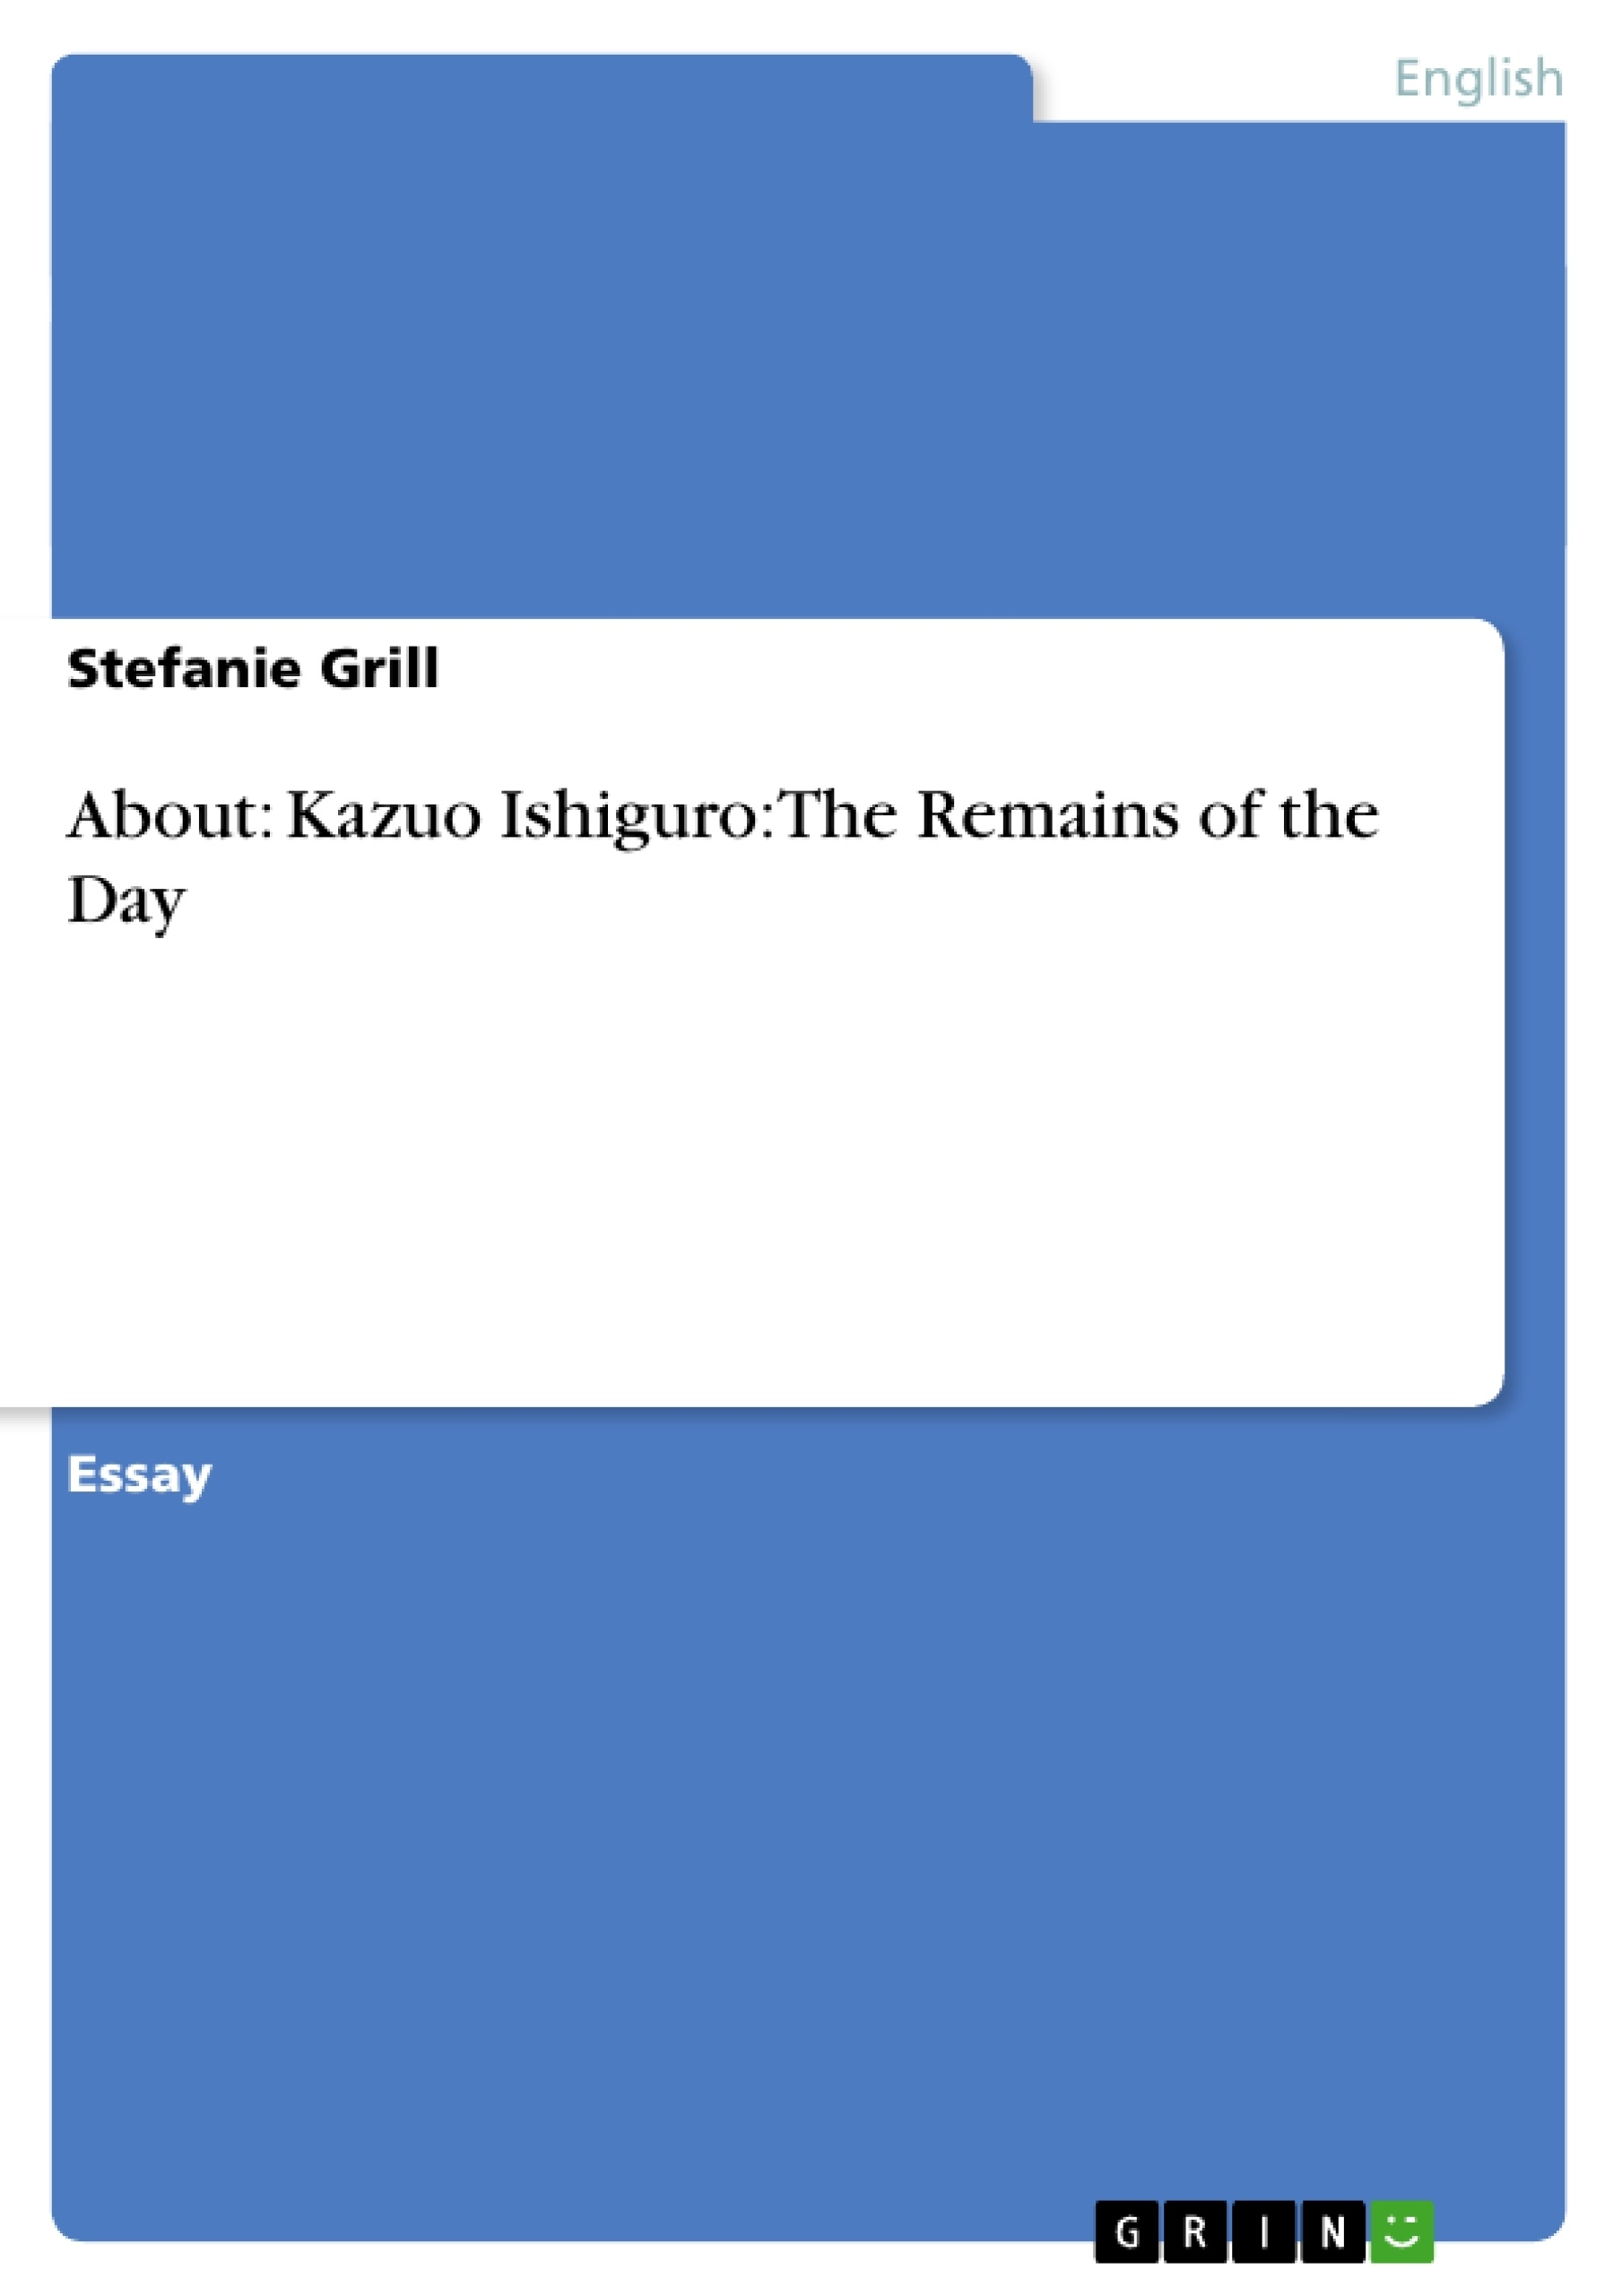 Title: About: Kazuo Ishiguro: The Remains of the Day